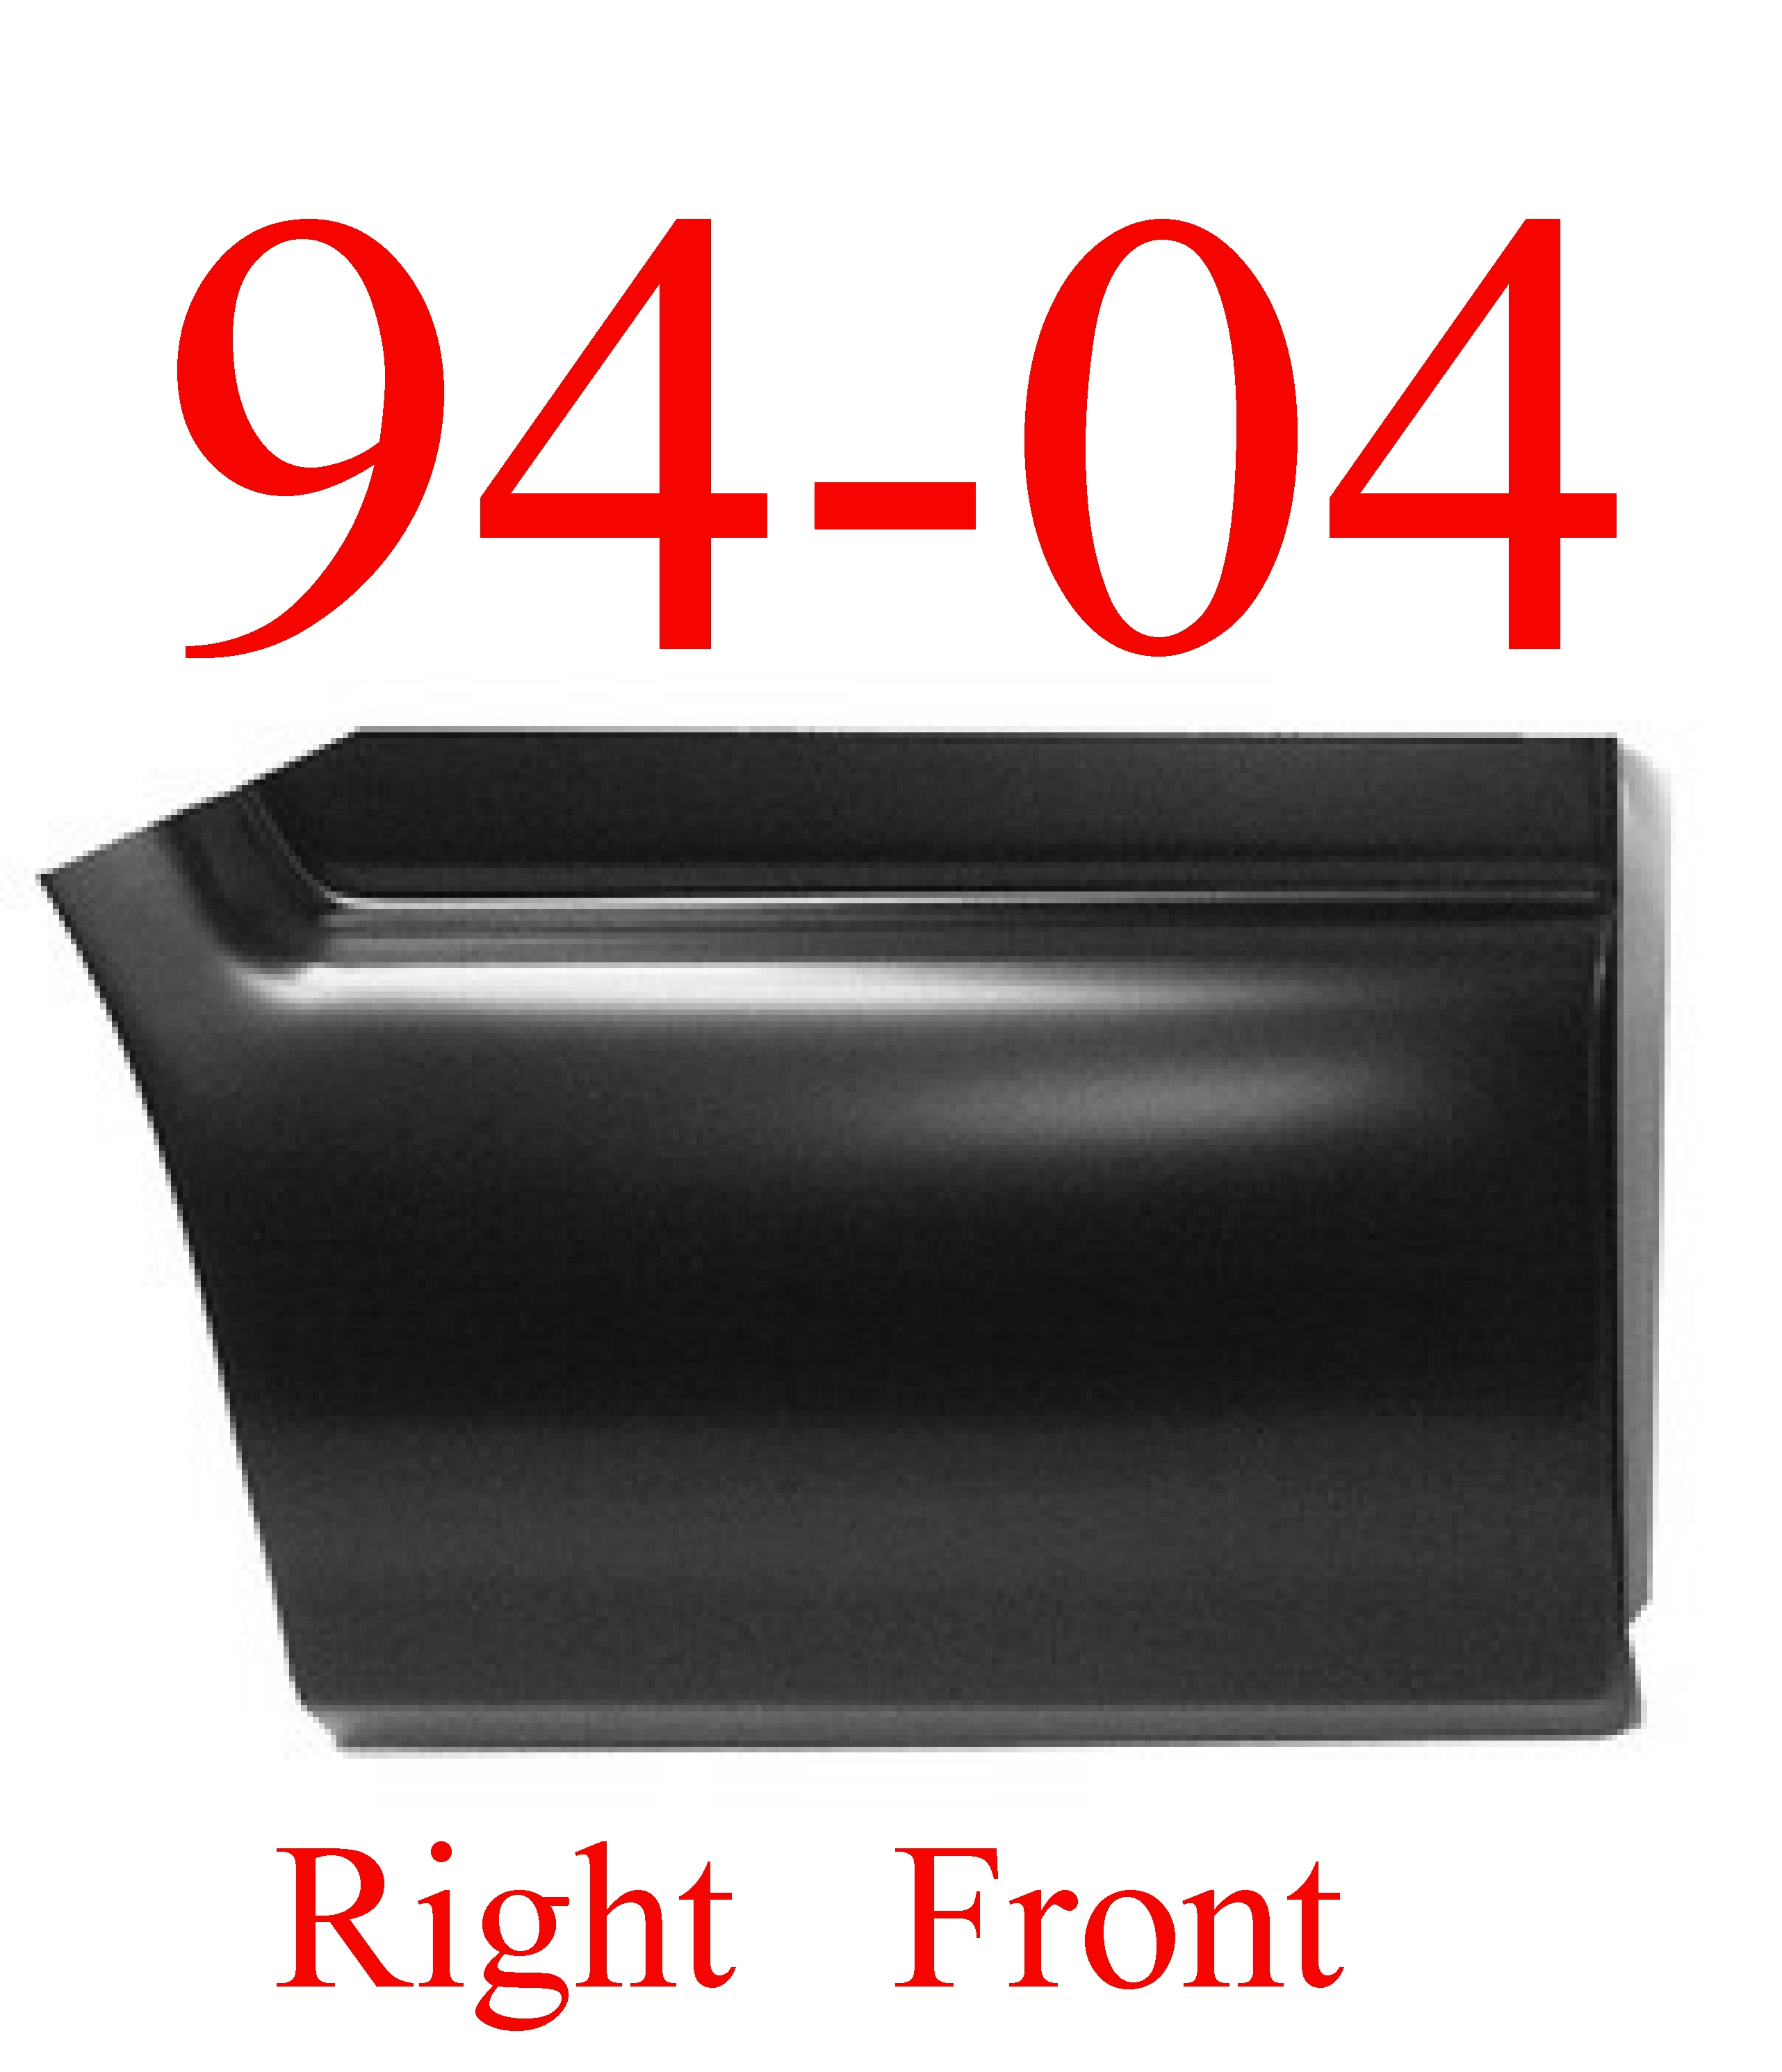 94-04 S10 RIGHT Front Lower Bed Patch